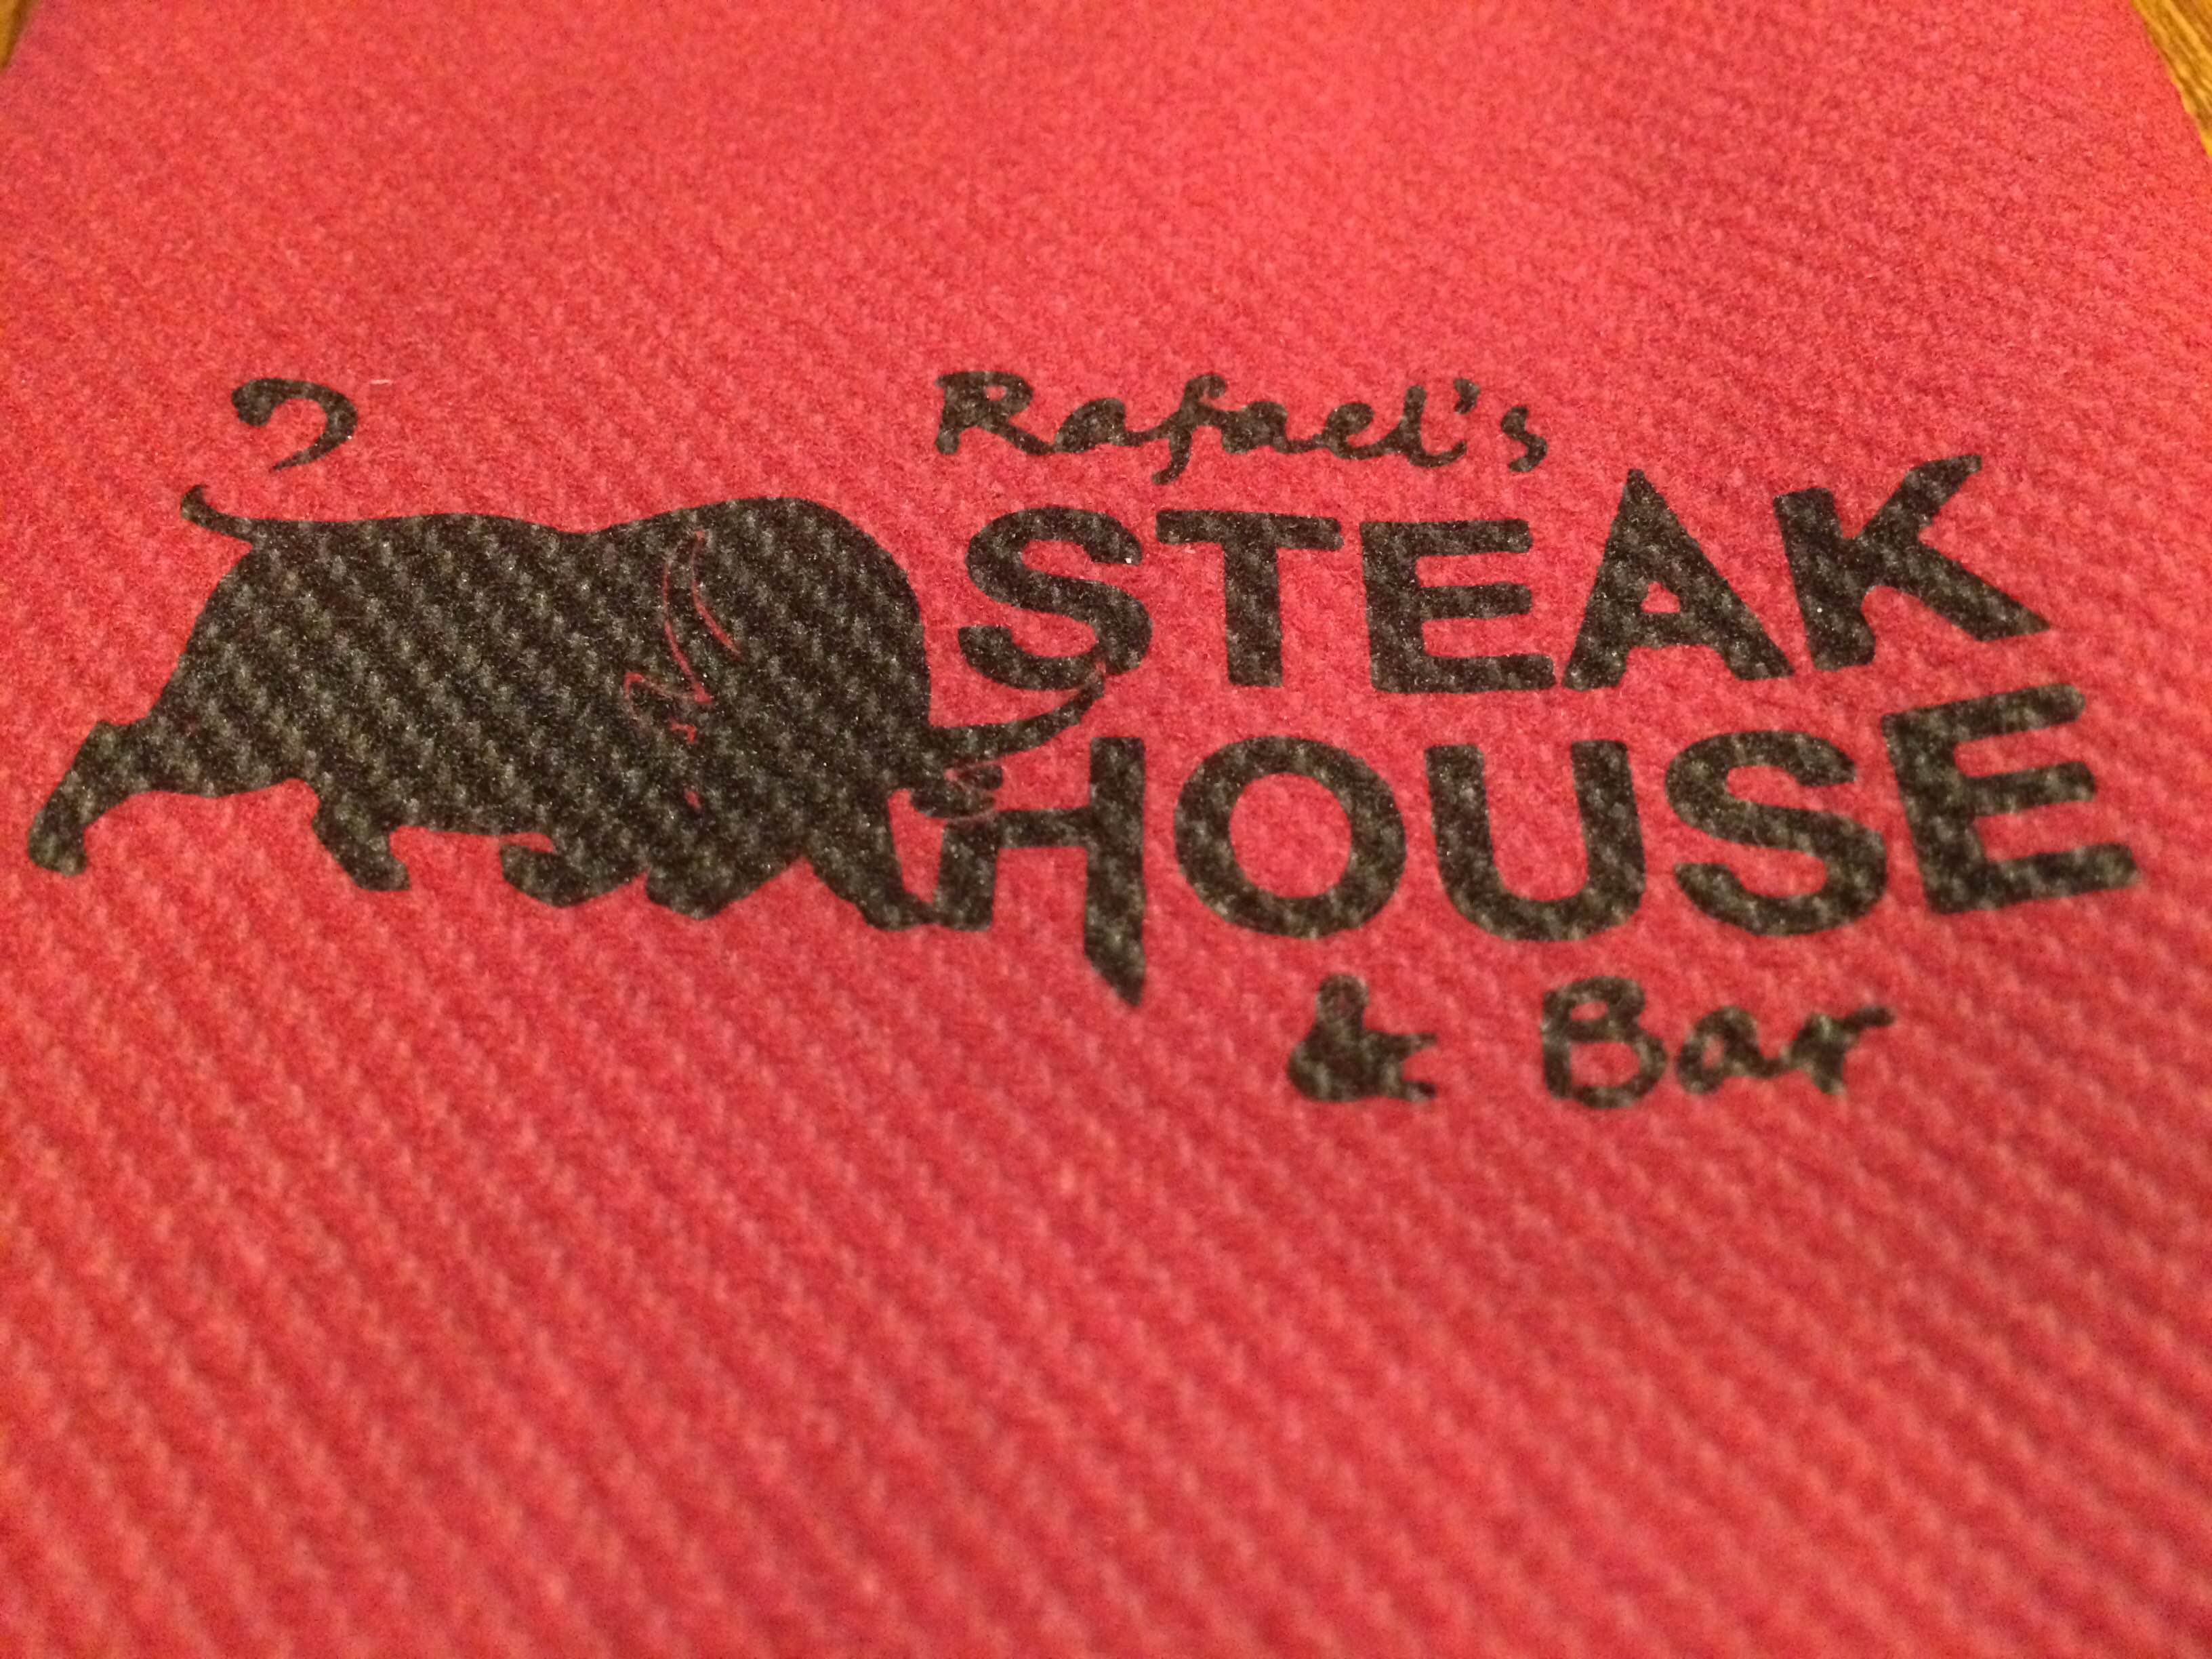 Rafael's Steak House and Bar, Porvoo